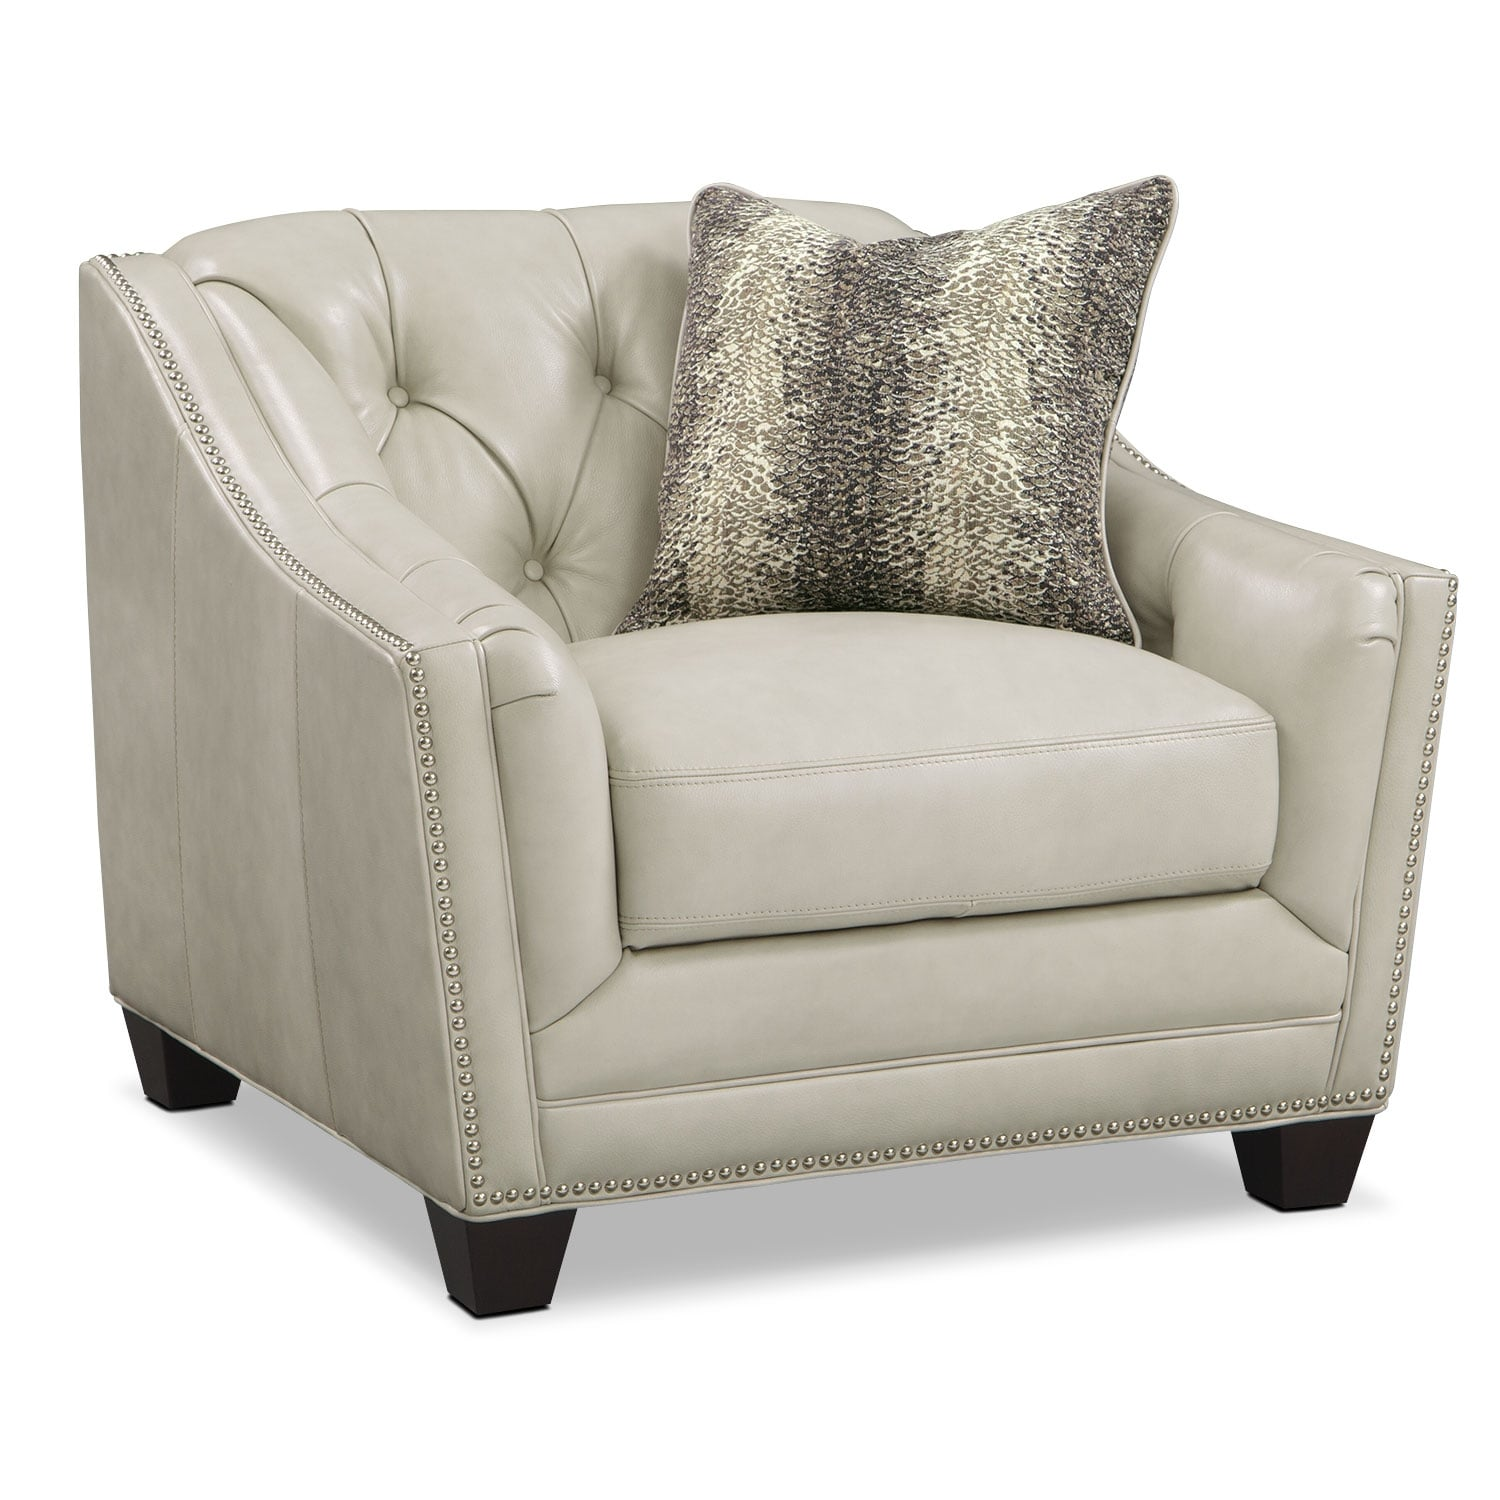 Living Room Furniture - Alexis Chair - Vanilla